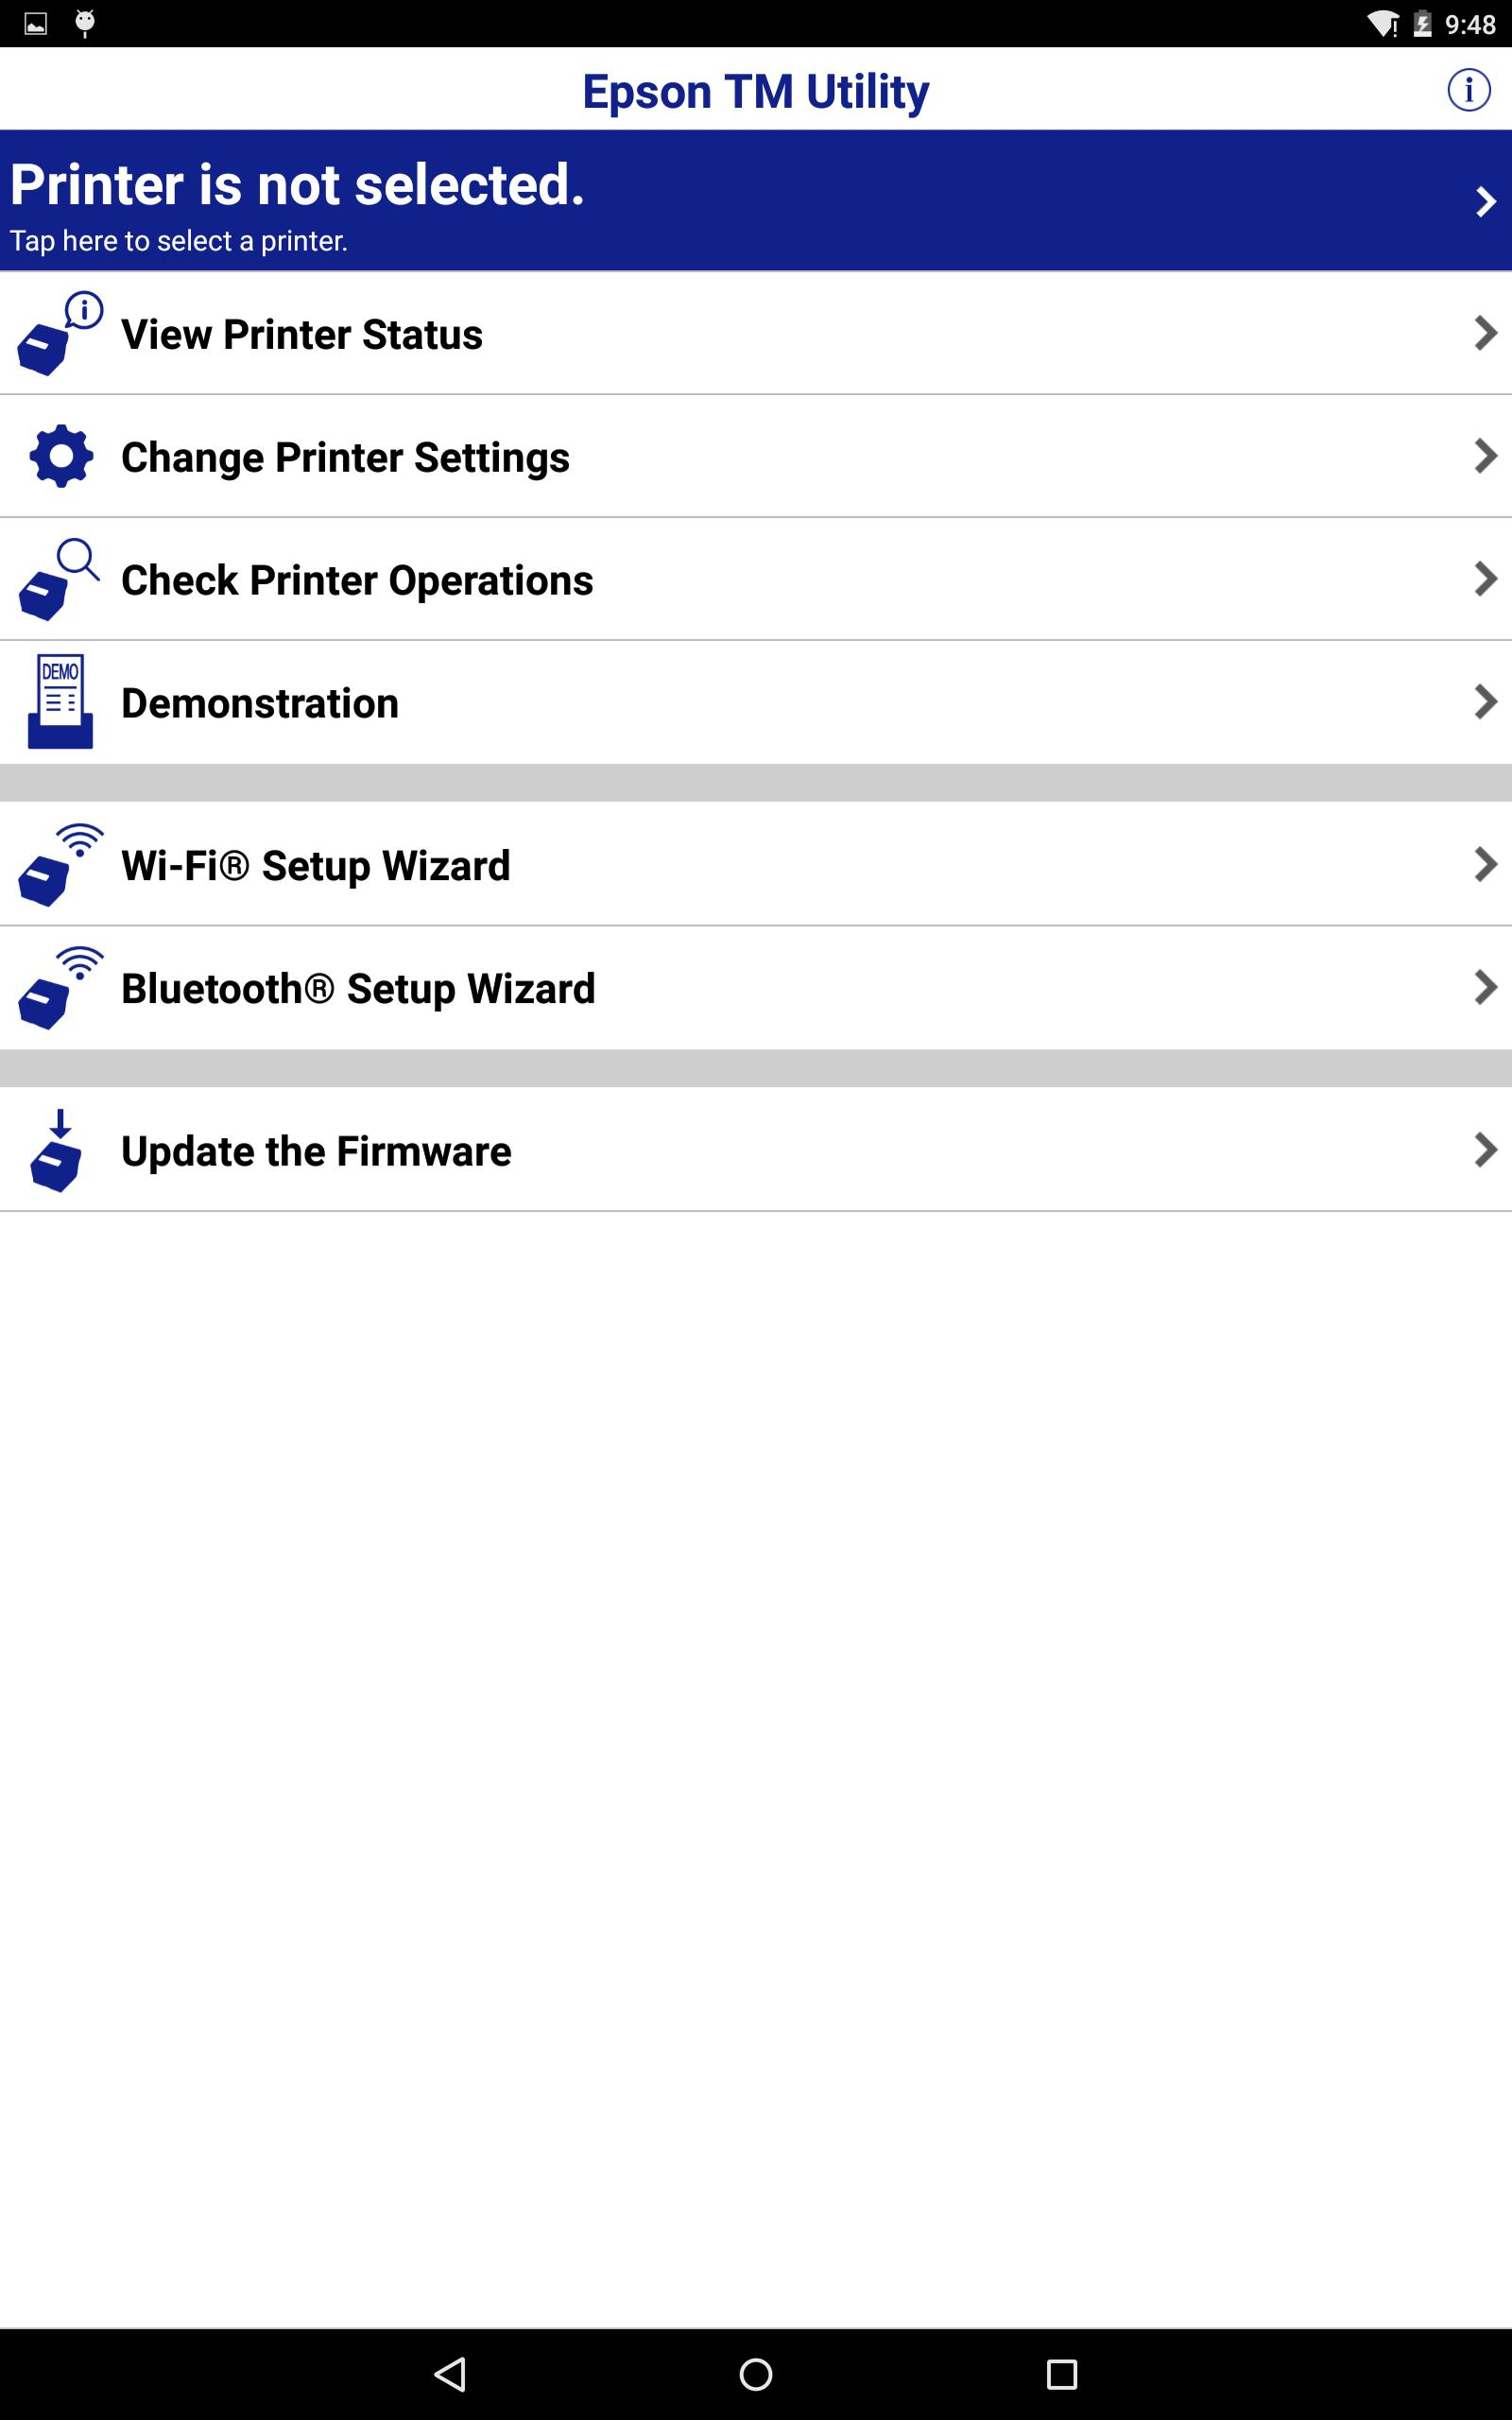 Epson TM Utility for Android - APK Download